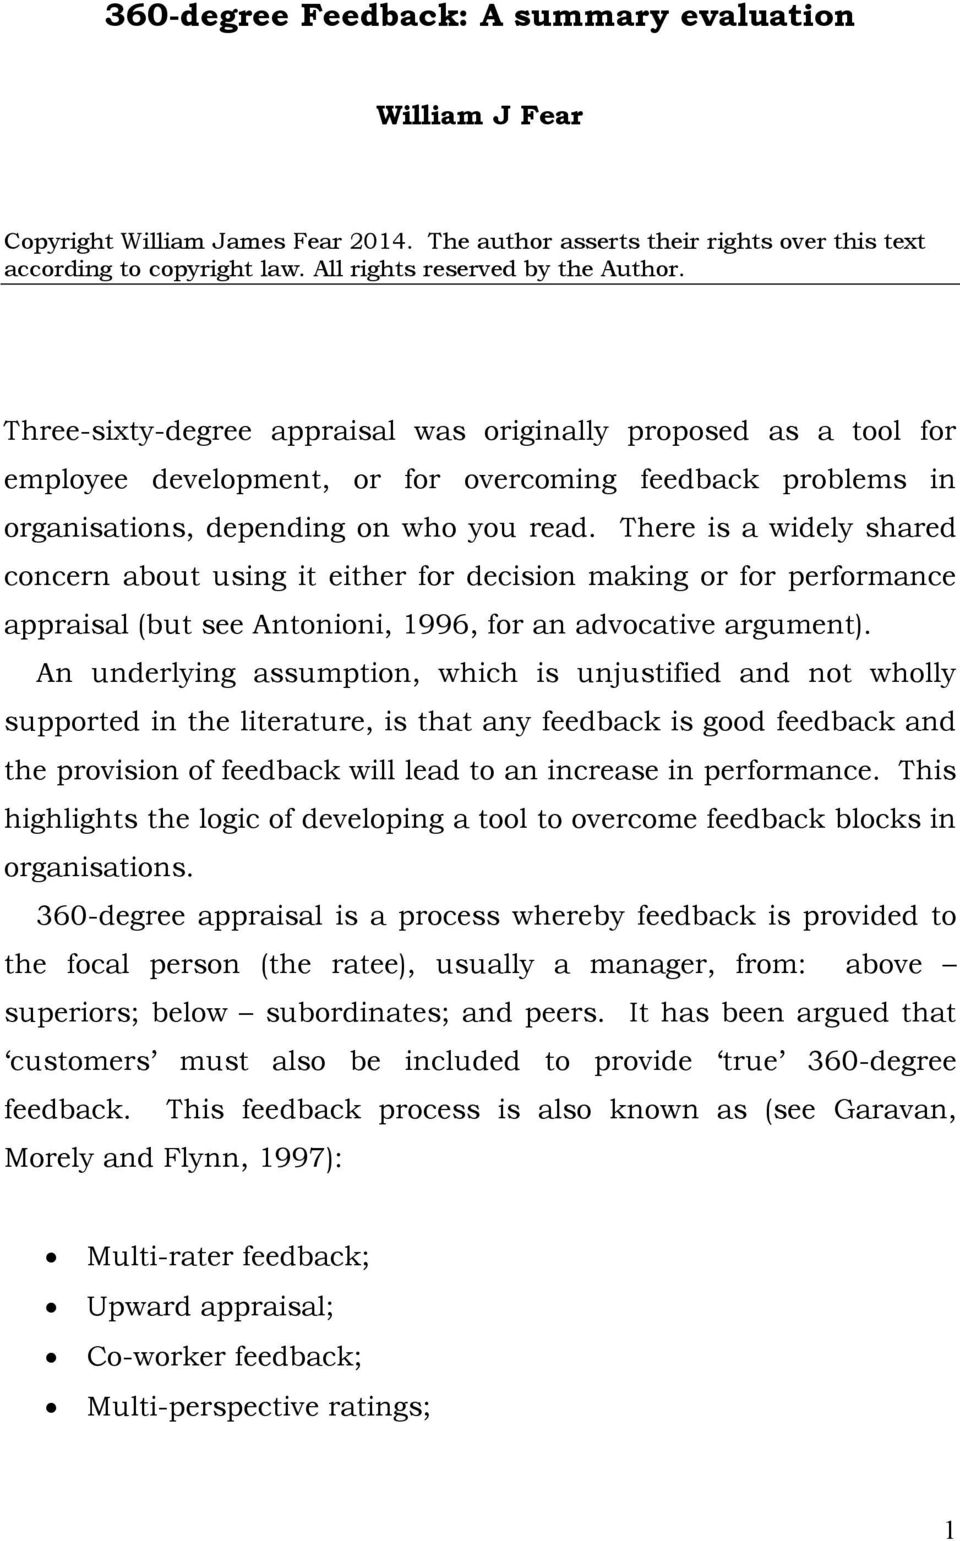 Three-sixty-degree appraisal was originally proposed as a tool for employee development, or for overcoming feedback problems in organisations, depending on who you read.